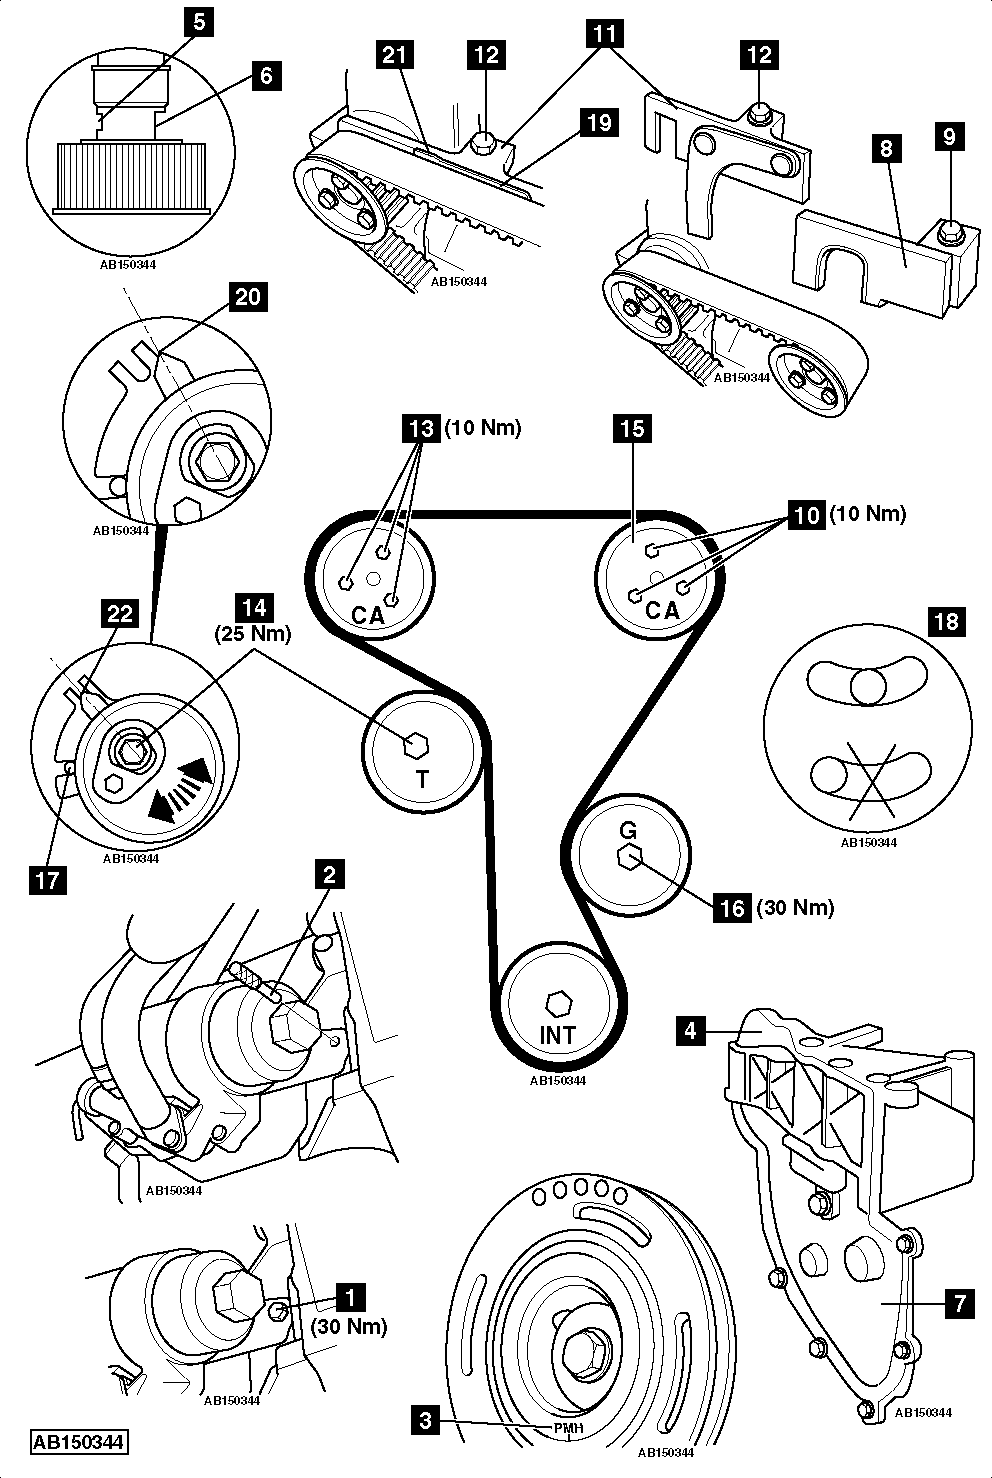 96 Lt1 Engine Diagram in addition How To Replace Timing Belt On Jaguar Xf 2 2d 2011 in addition Camshaft position sensor replacement likewise 94 Camaro Egr Valve Location besides 457. on crankshaft wiring harness